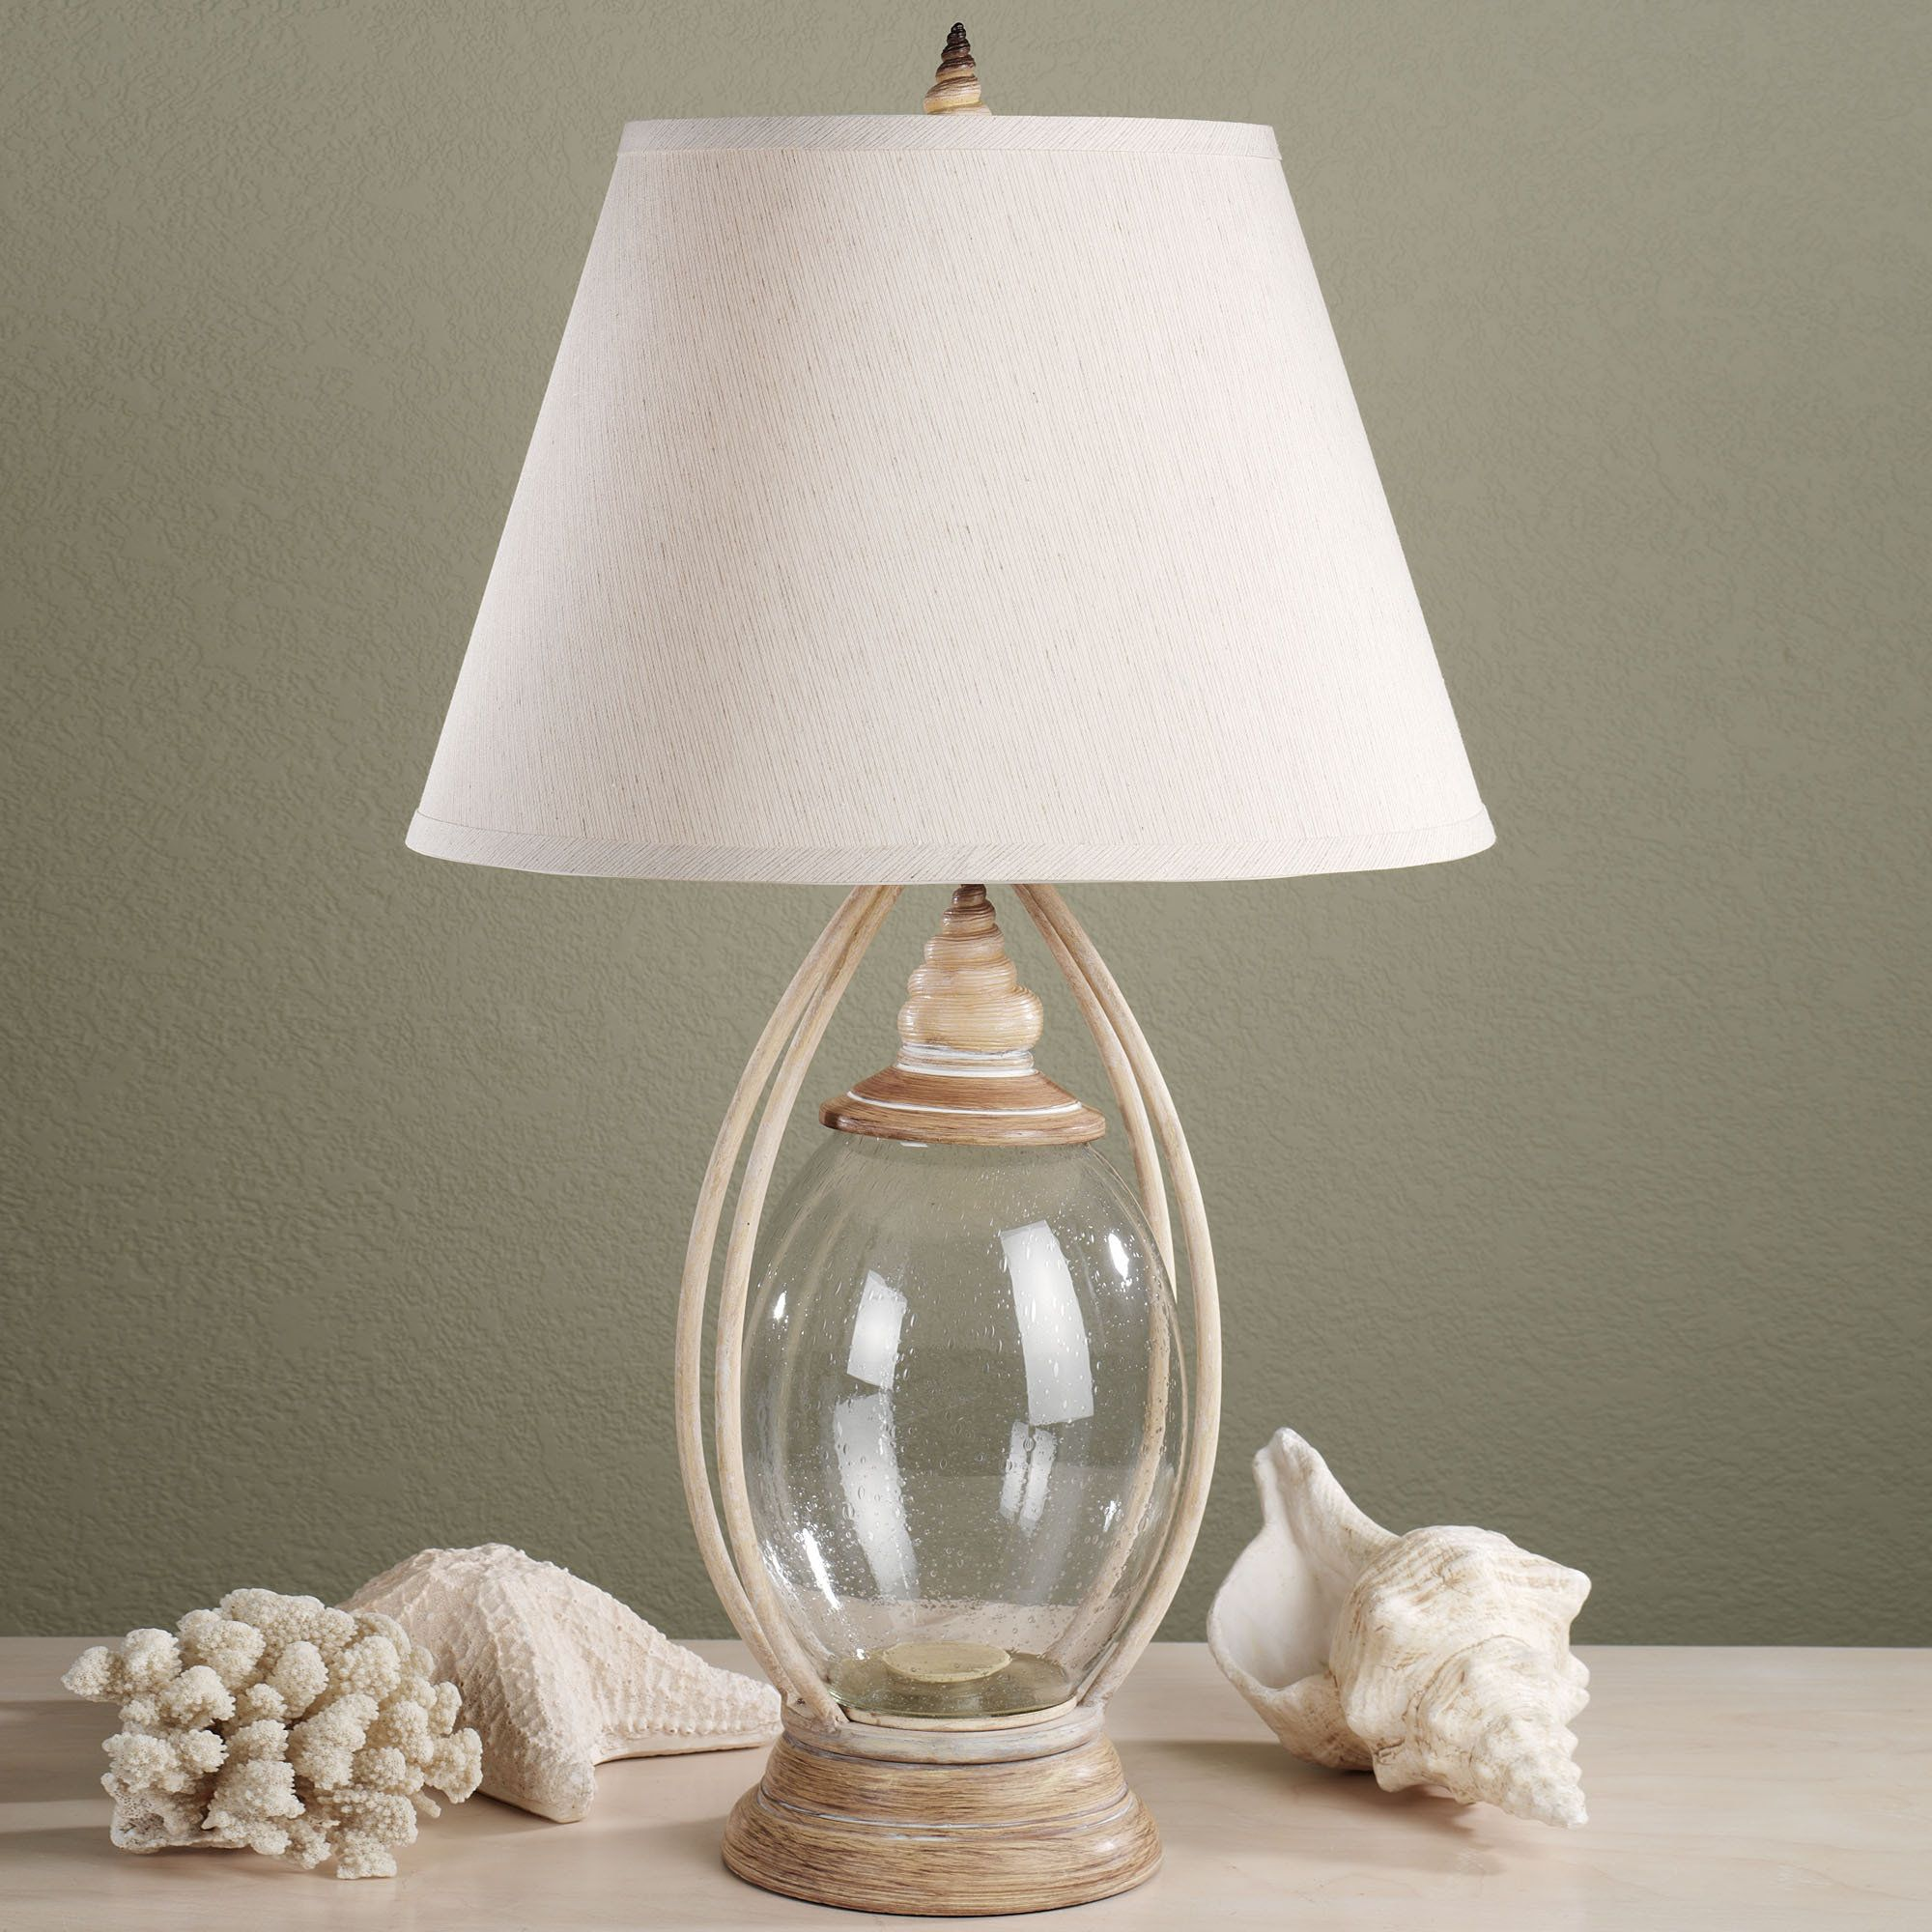 sea treasures fillable glass table lamp | glass table lamps, glass